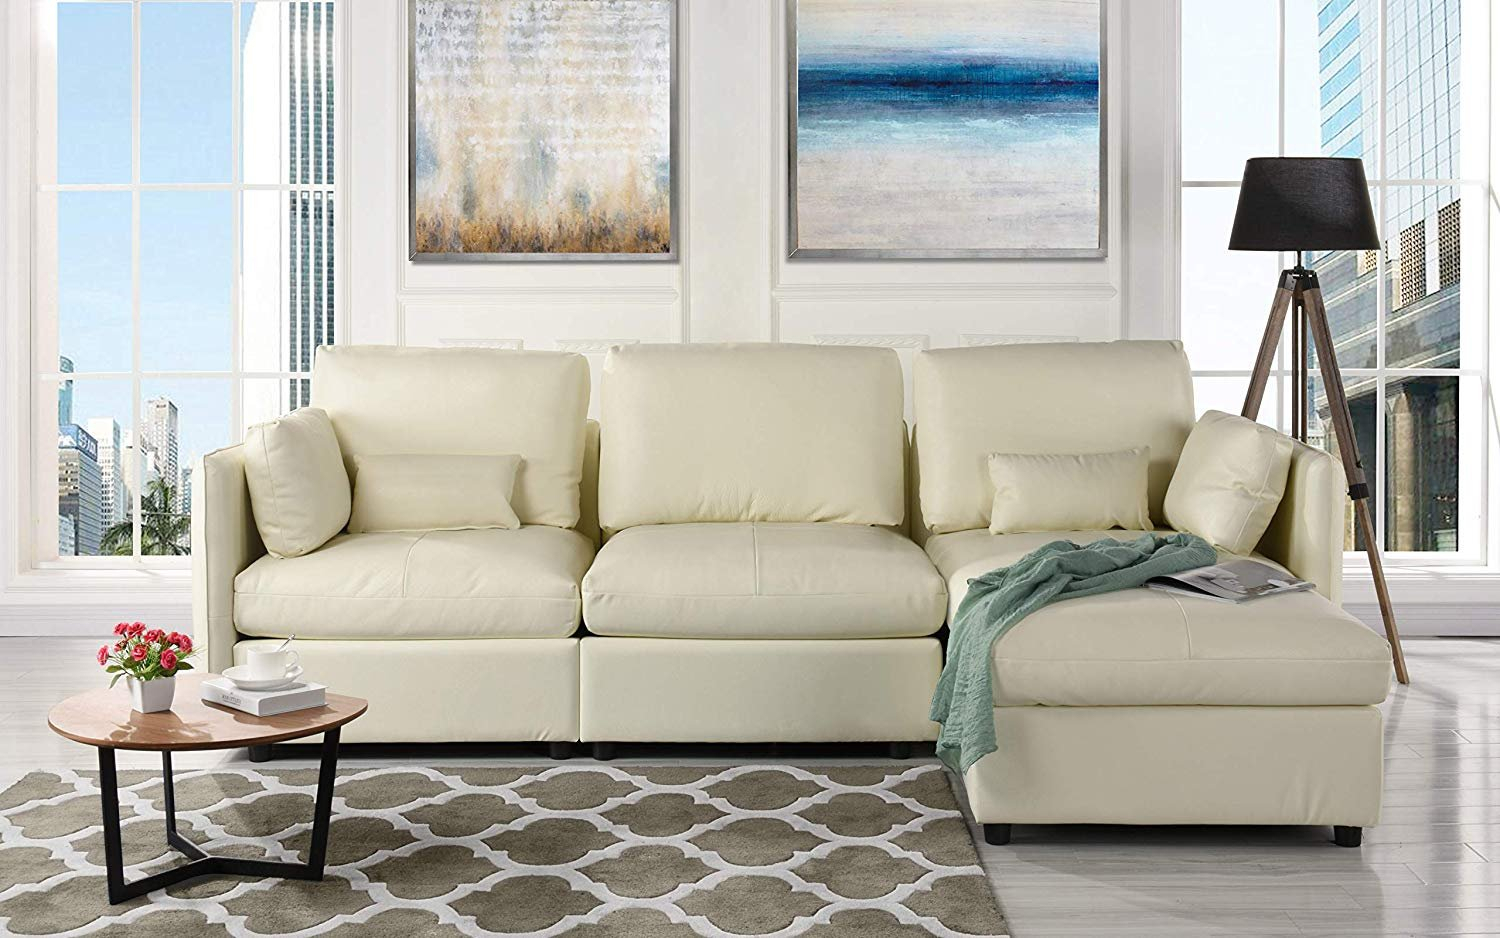 L Shape Living Room Leather Match Sectional Sofa, Right Pertaining To Hannah Right Sectional Sofas (View 11 of 15)